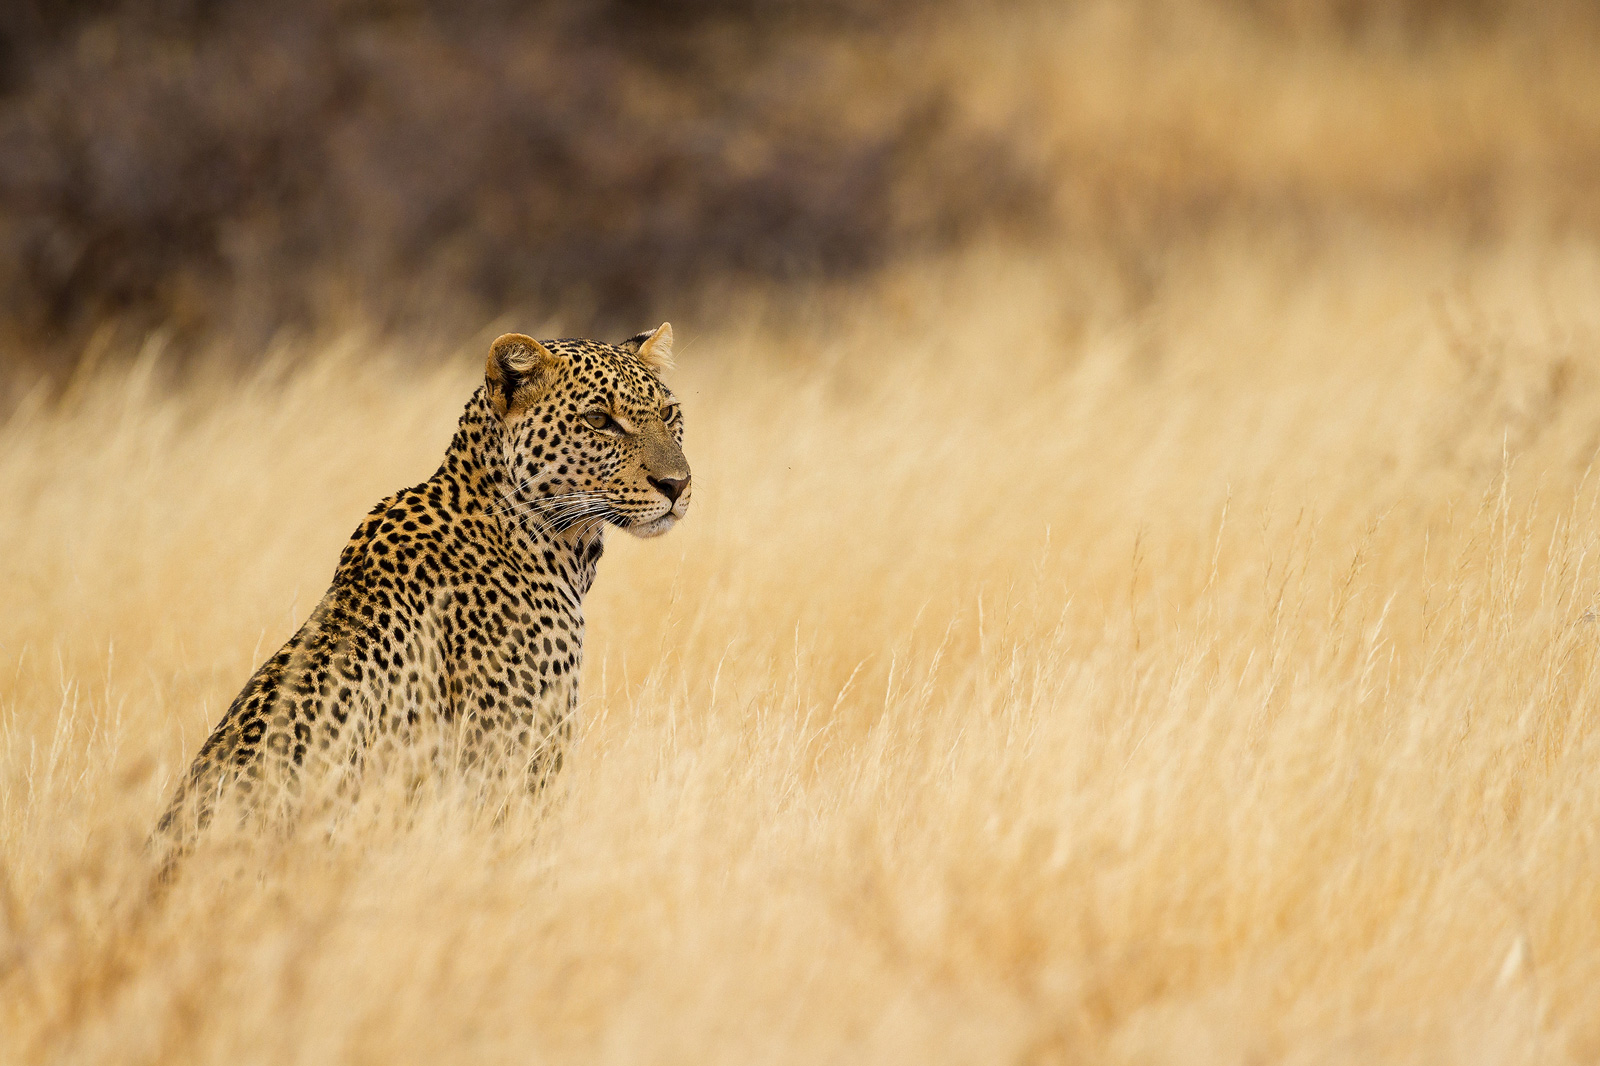 A leopard blends perfectly into a dry grass field in Samburu National Reserve, Kenya ©Alessandro Tramonti